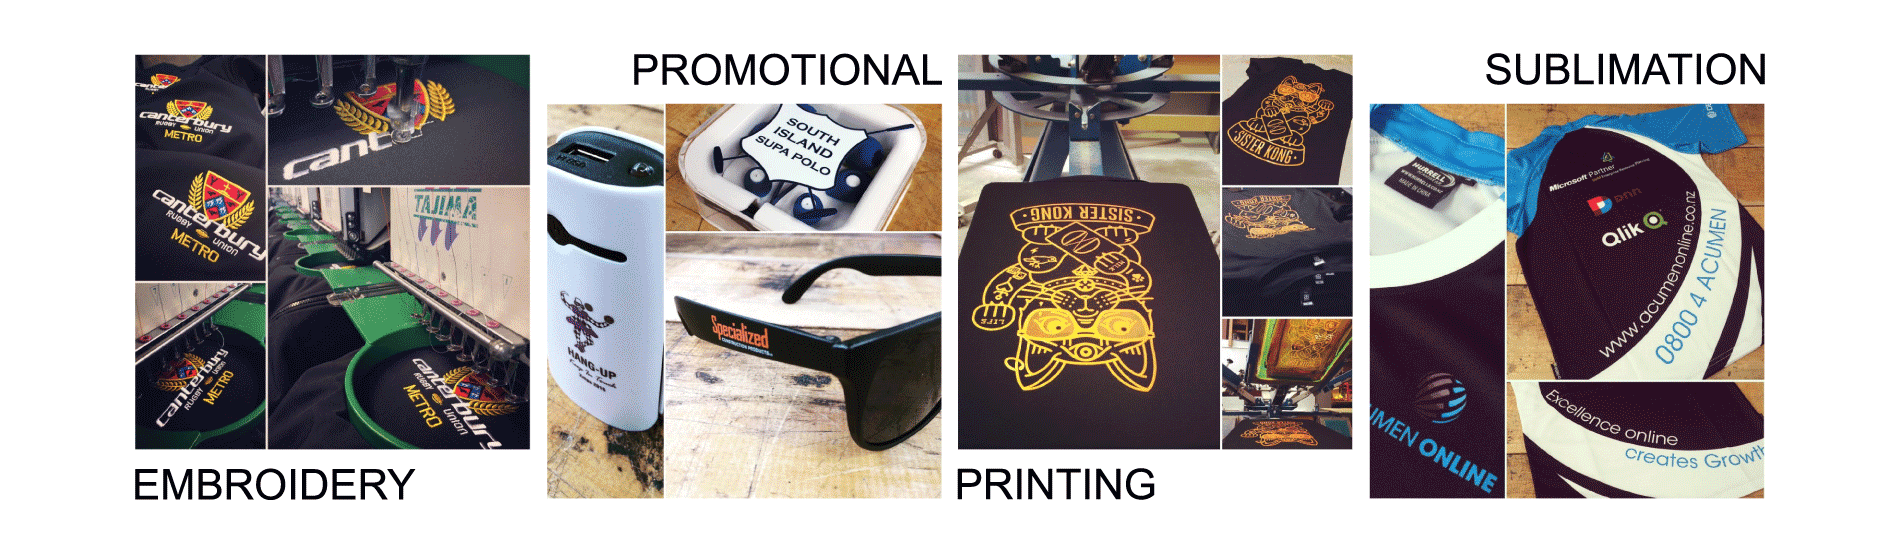 EMbroidery / Promotional Items / Screen Printing / Sublimation